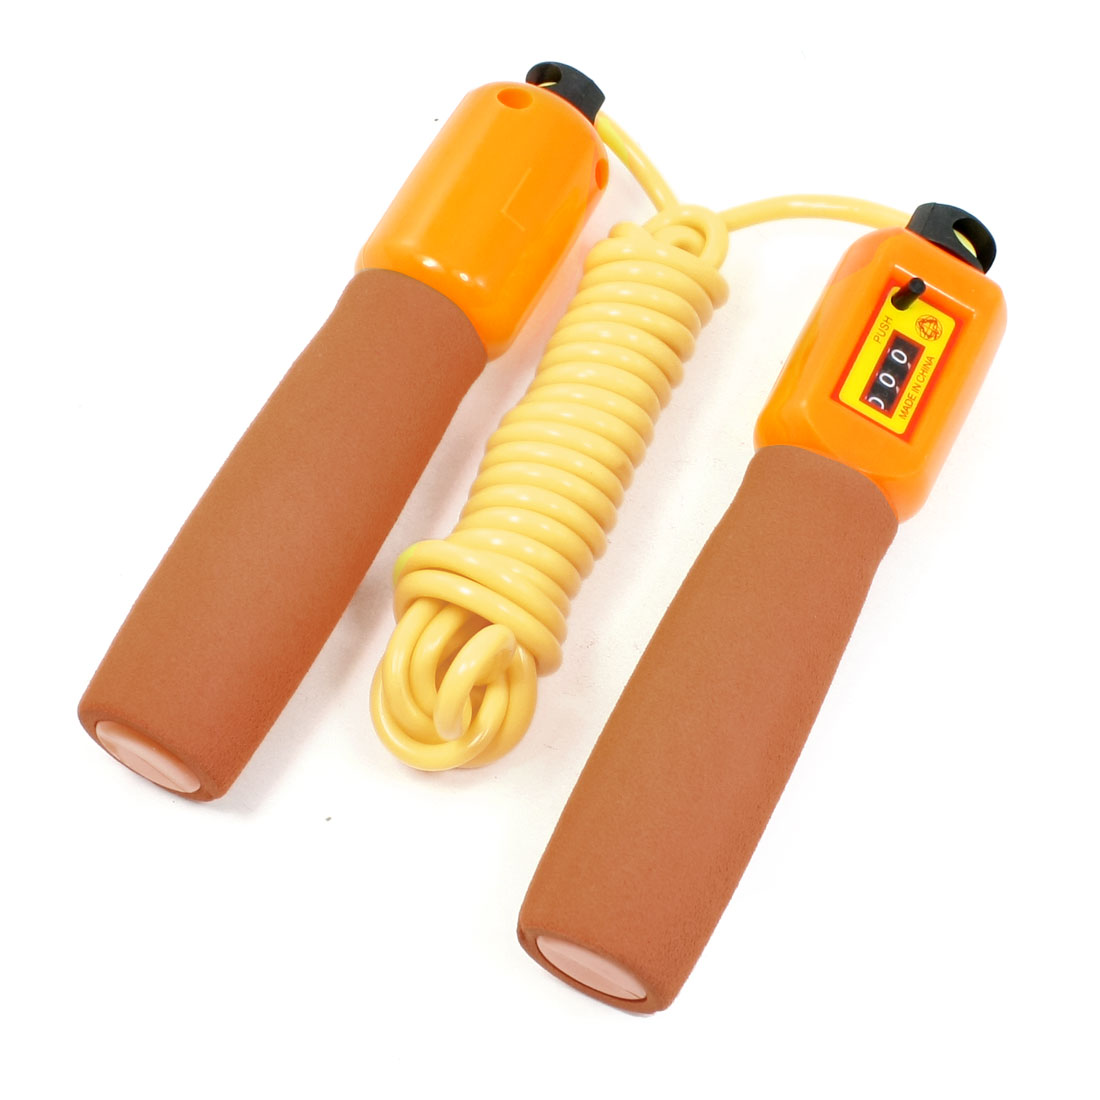 Orange Yellow Nonslip Grip Counter Flexible Jumping Skipping Rope 2.8 Meters